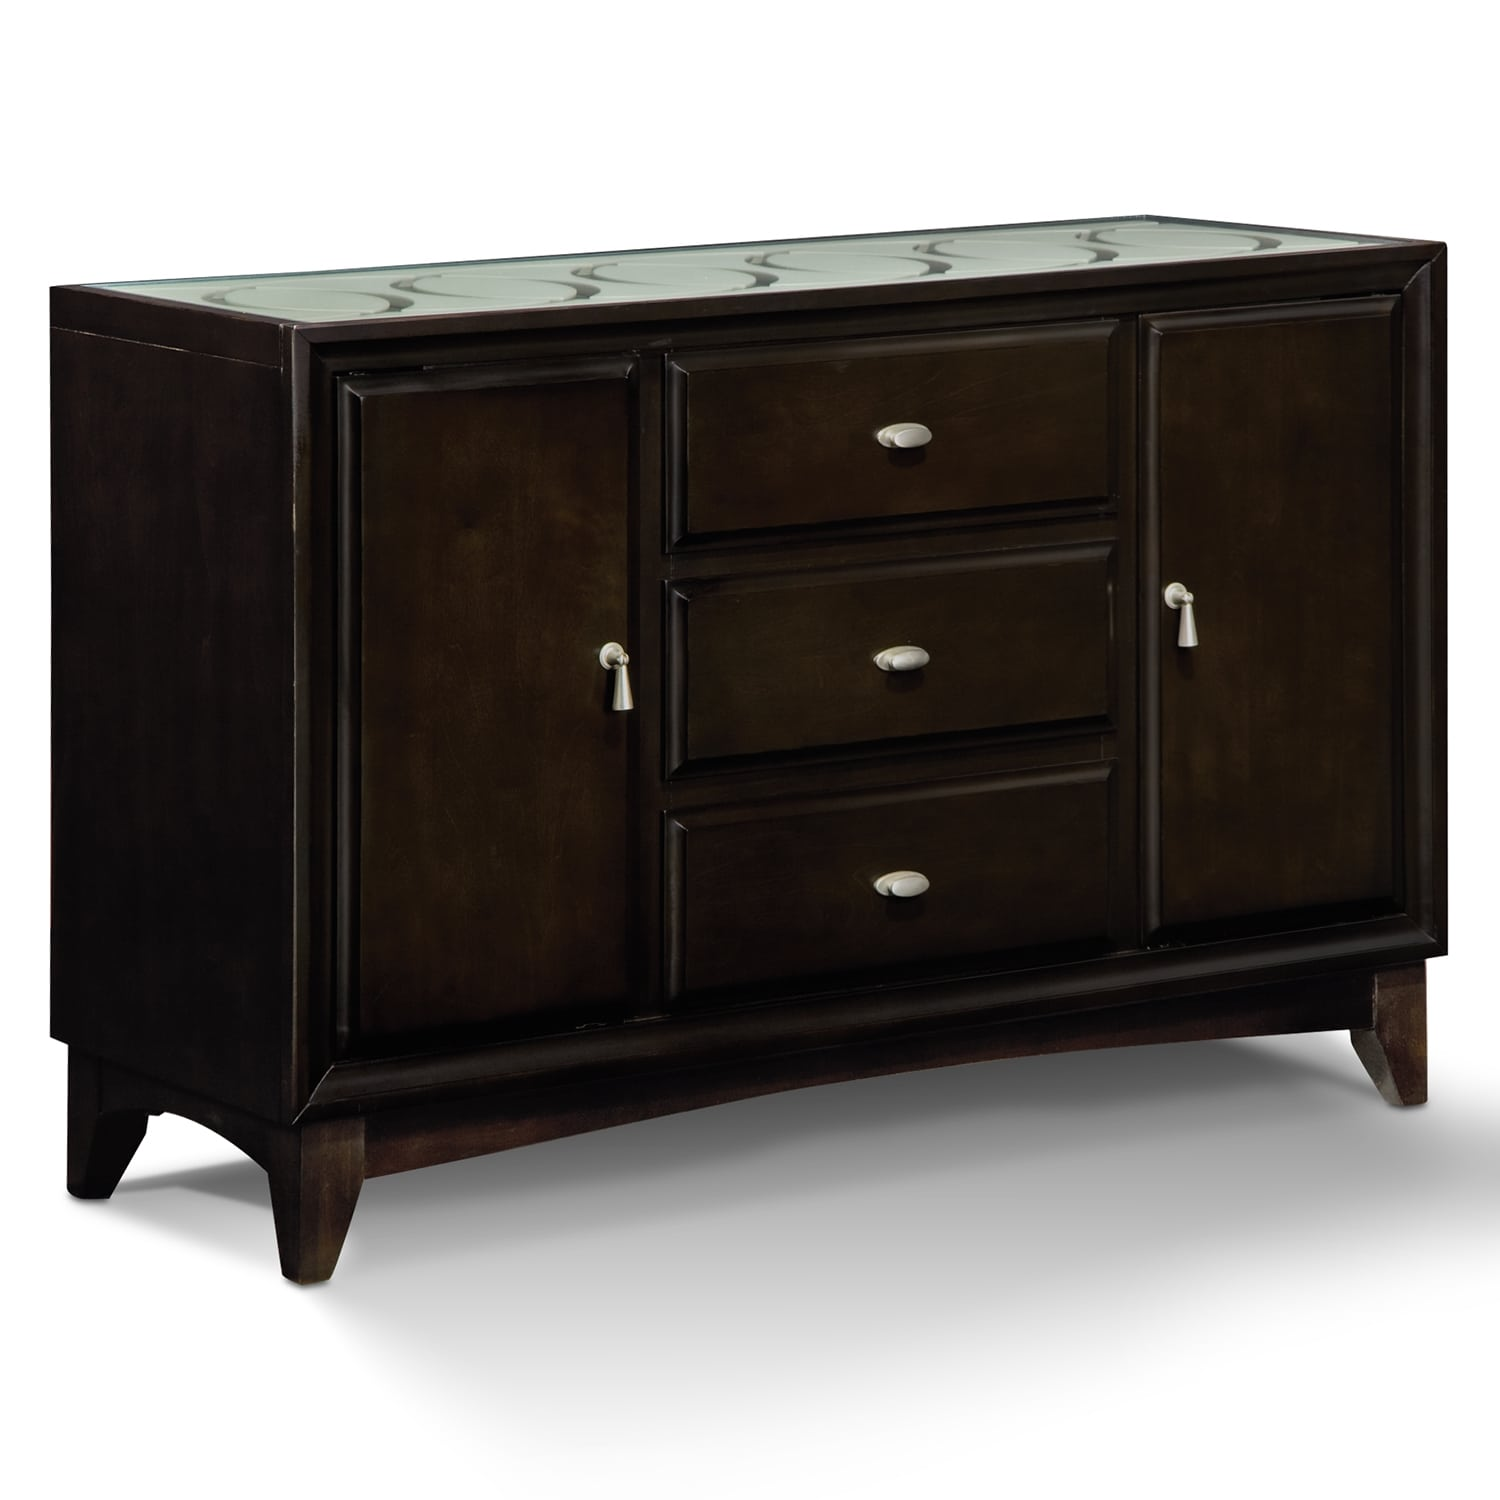 Dining Room Sideboards And Buffets: American Signature Furniture